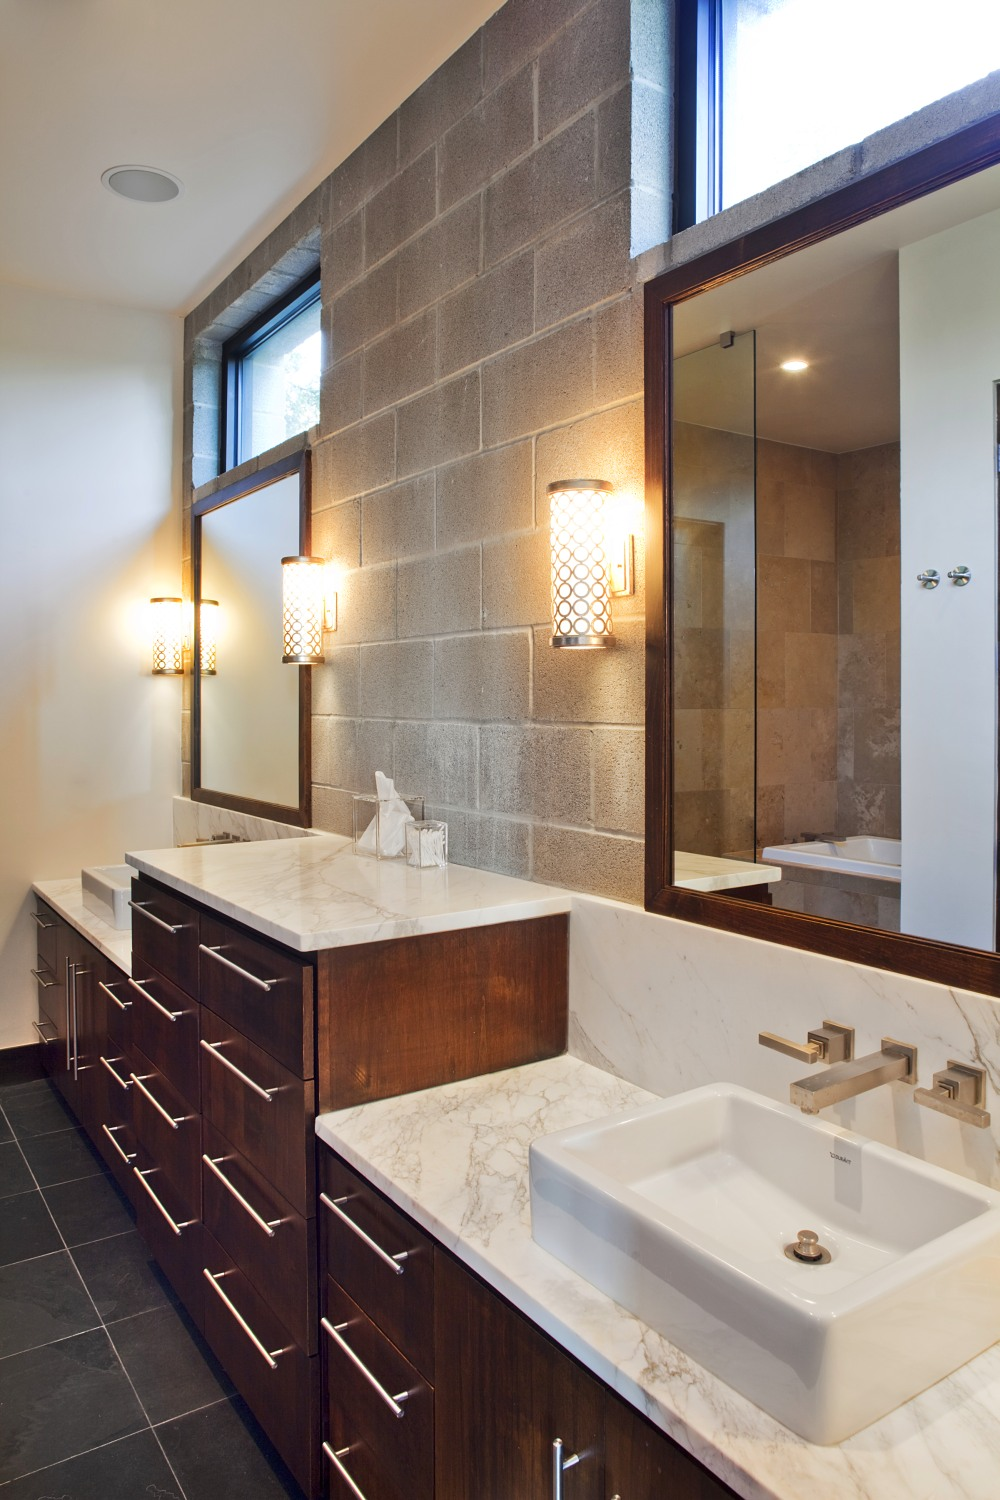 Architecture Home Modern Industrial bathroom